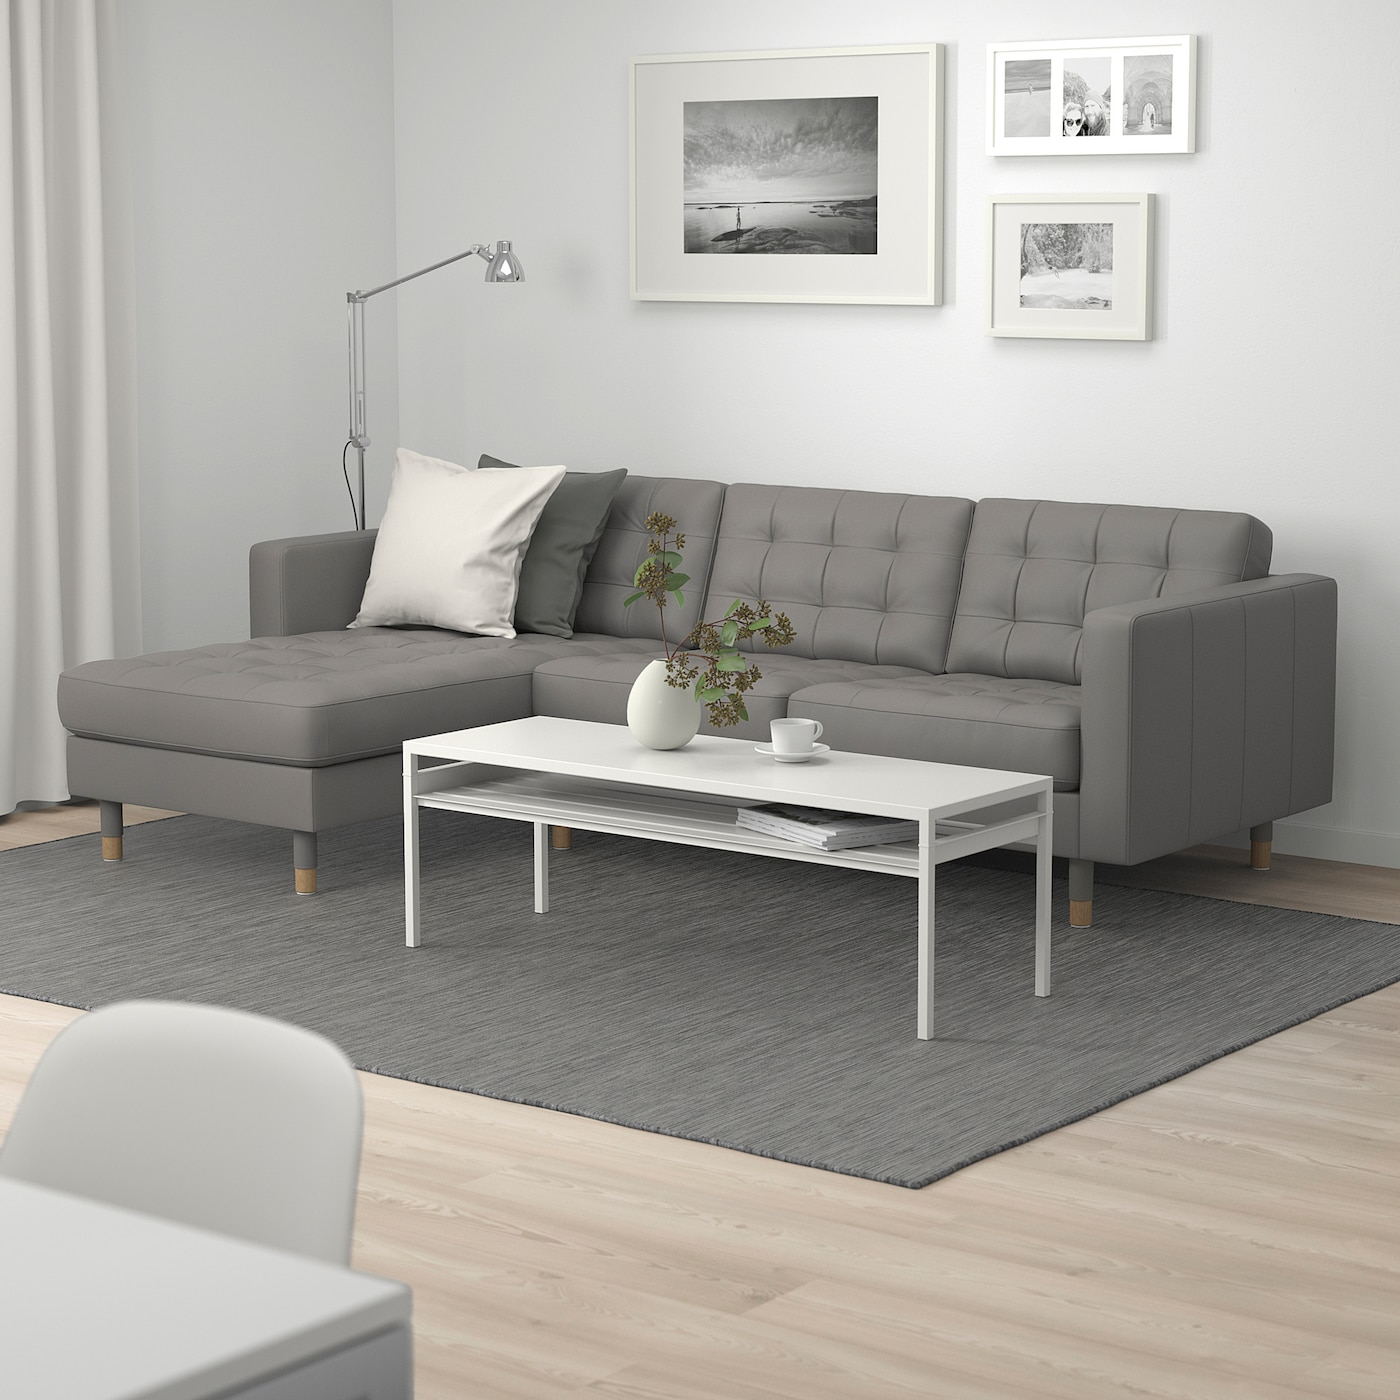 MORABO Sofa   with chaise/Grann/Bomstad gray green/wood